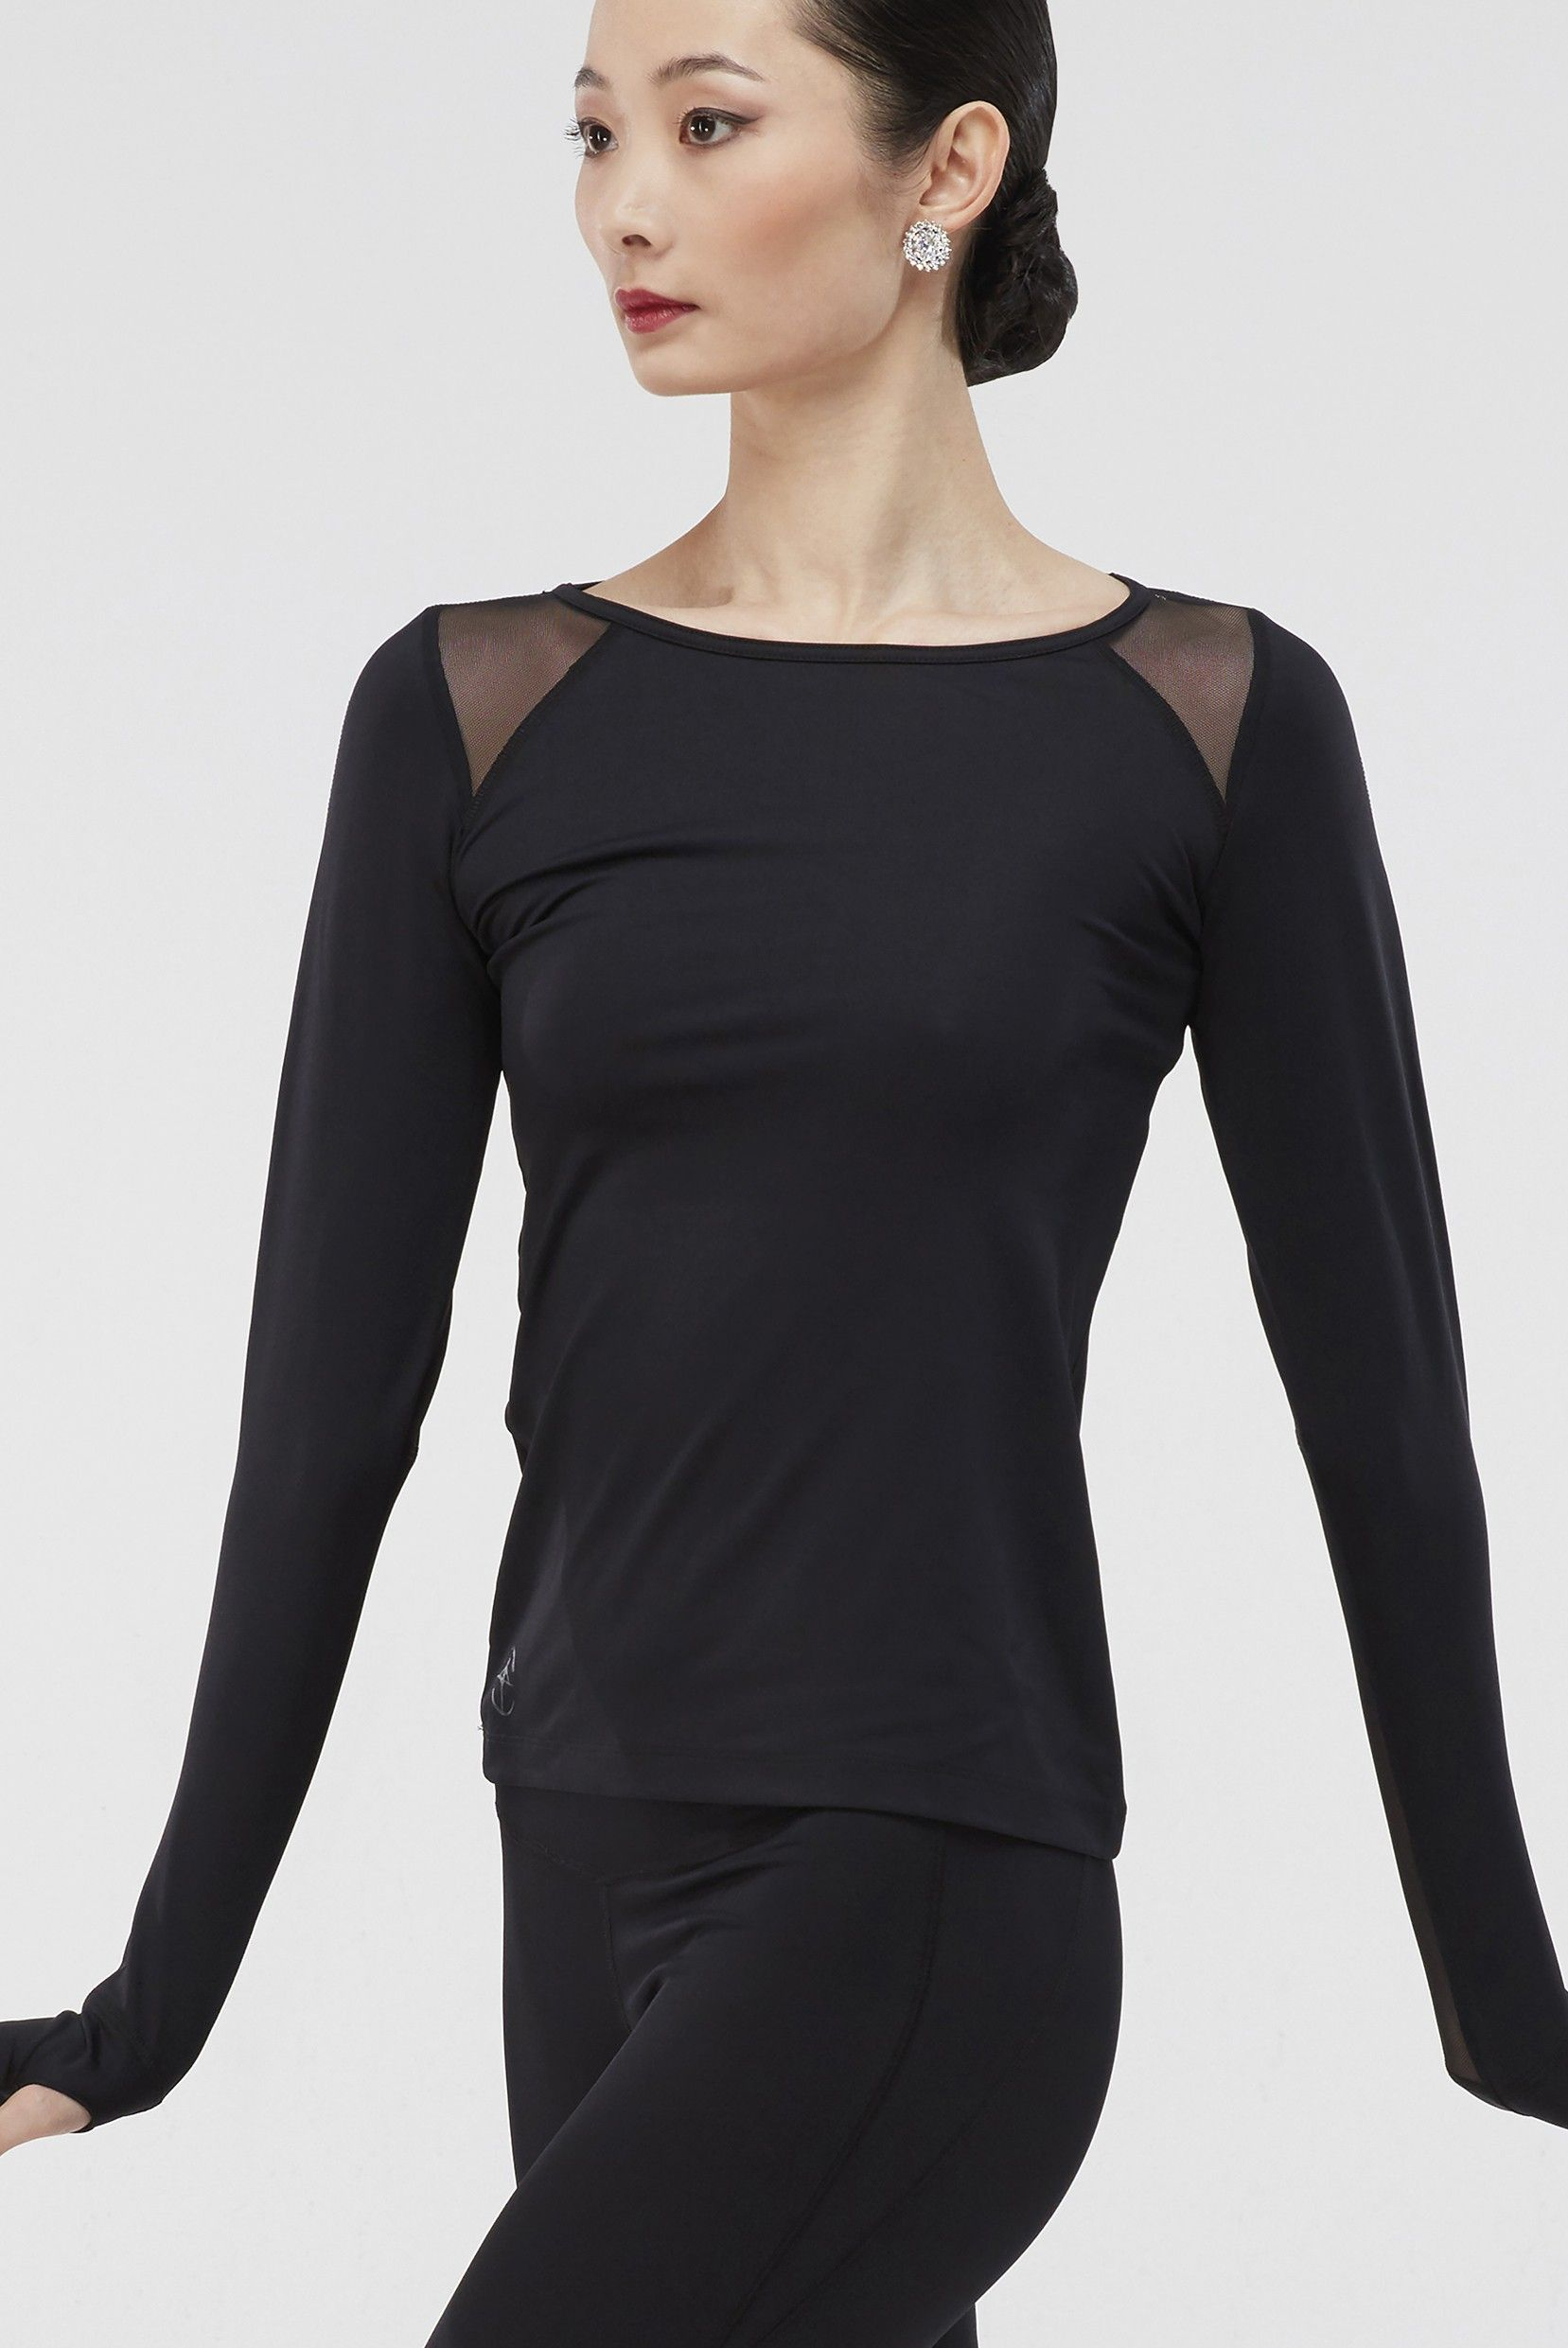 Wear Moi Women's Black Arezza Athletic Shirt with Mesh